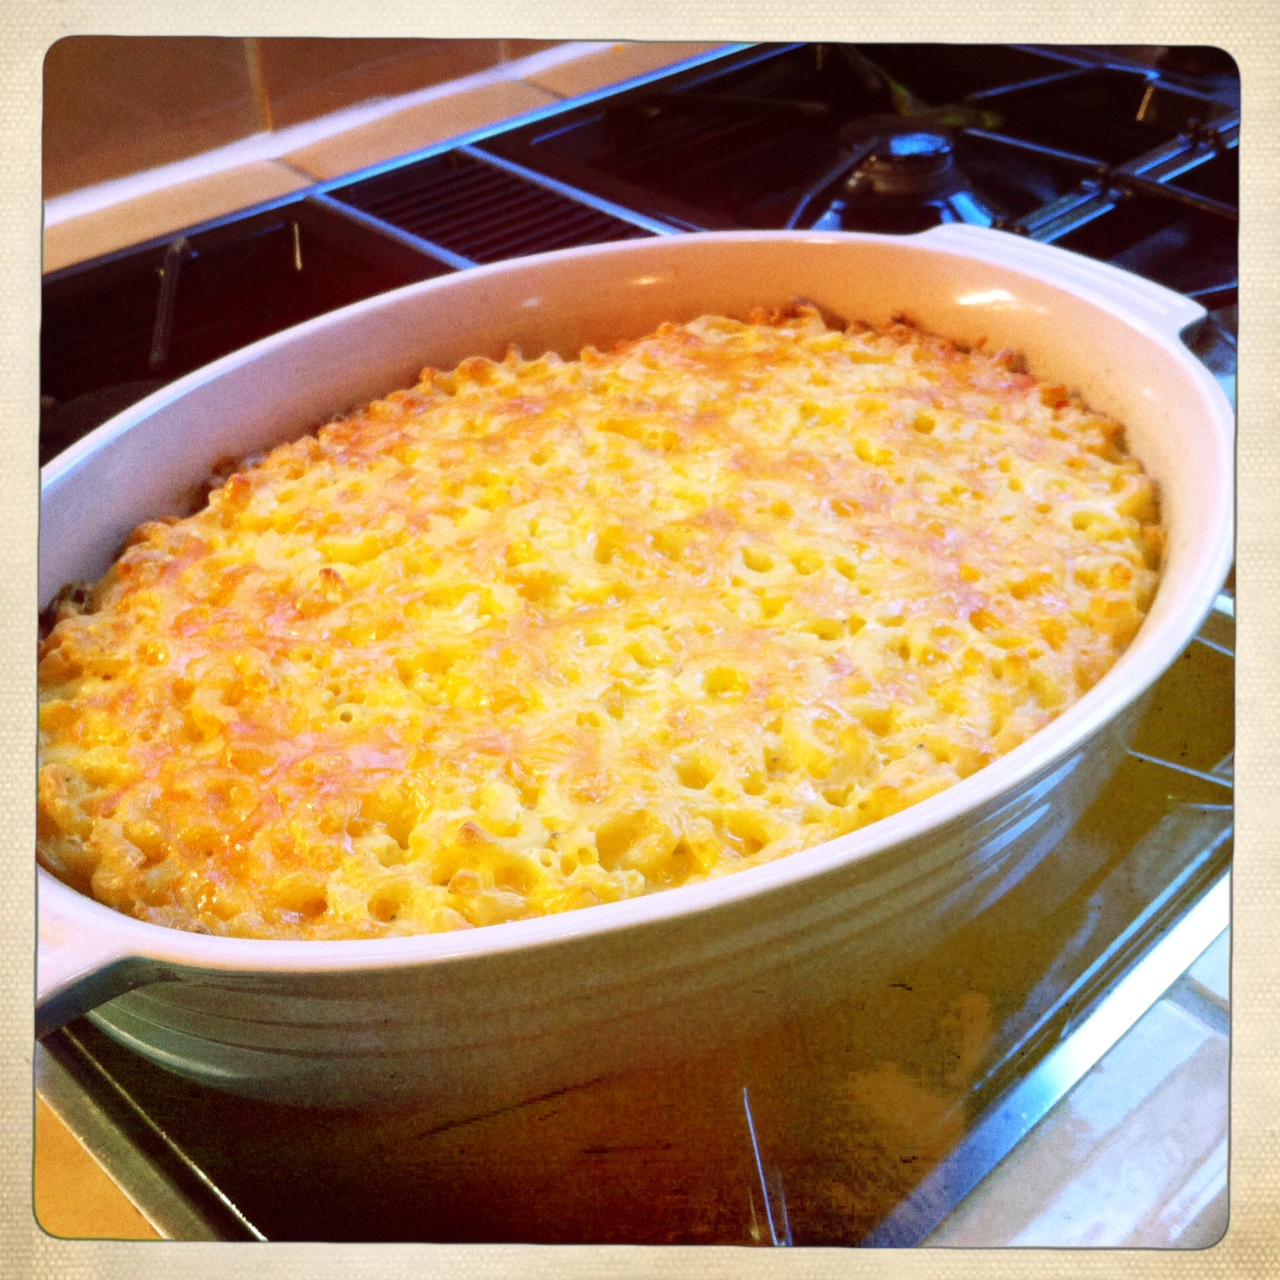 The meat and potatoes foodie pioneer woman 39 s mac and cheese for Pioneer woman mac and cheese recipe